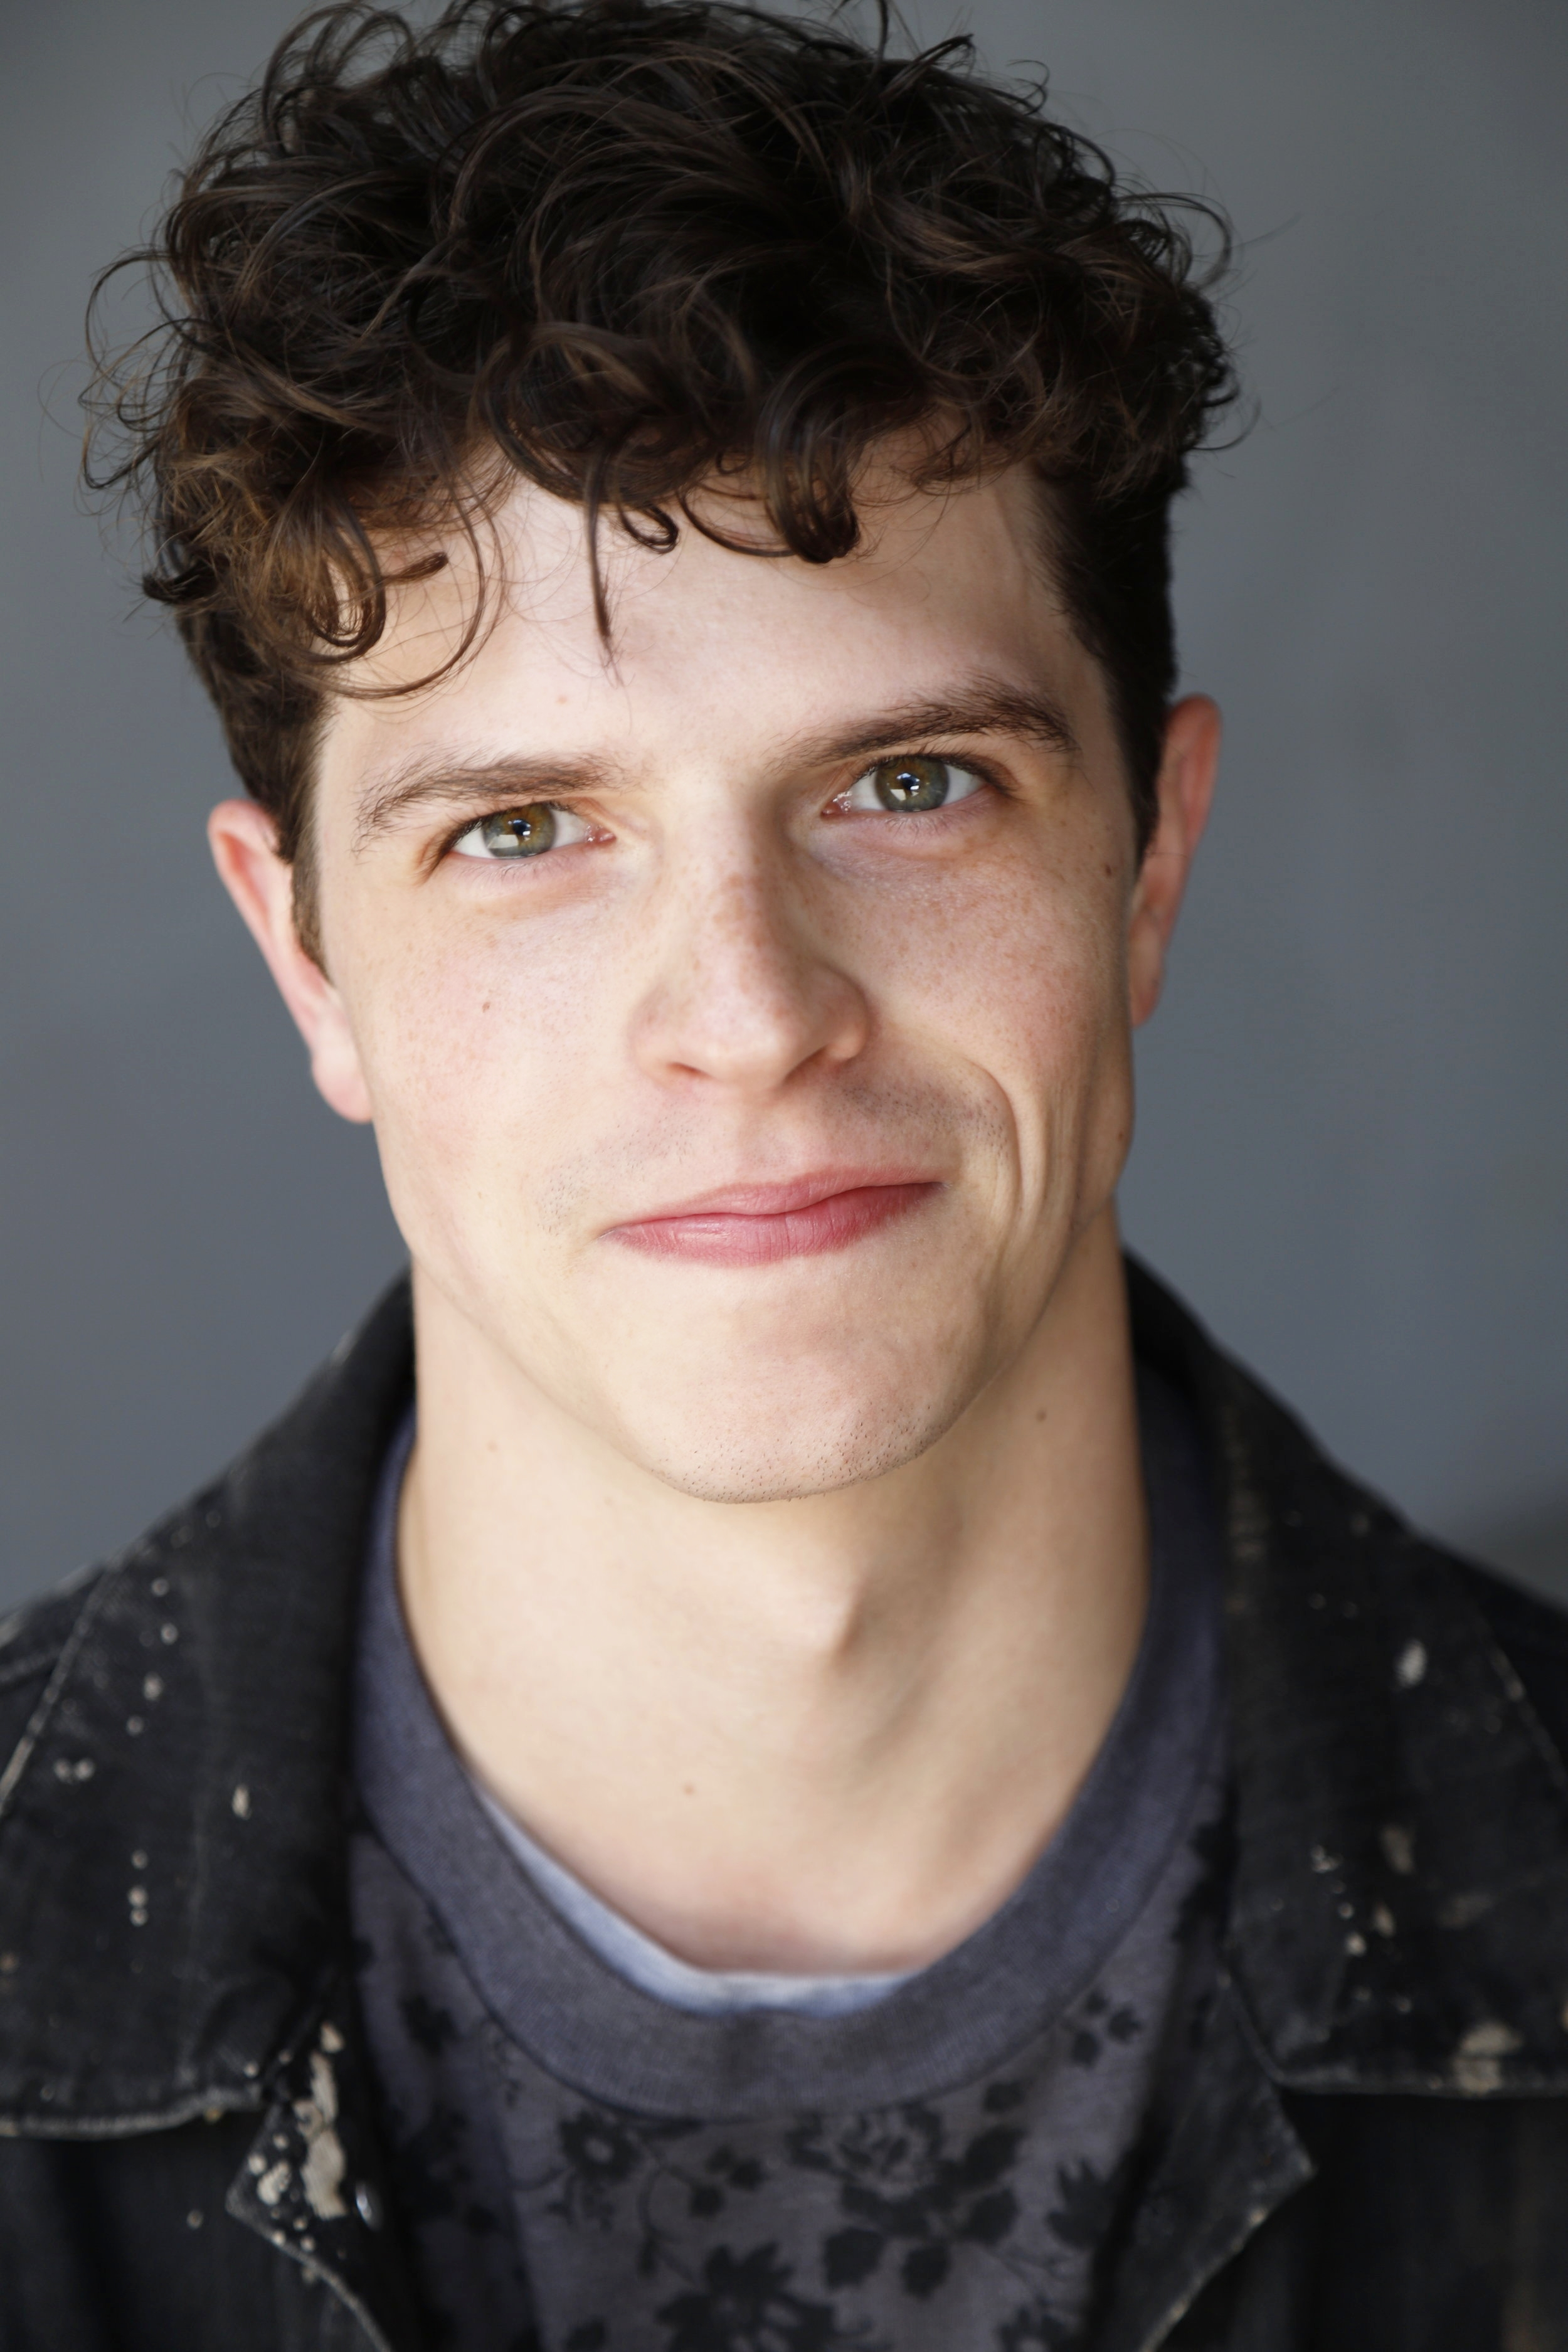 Darcy O'Connell